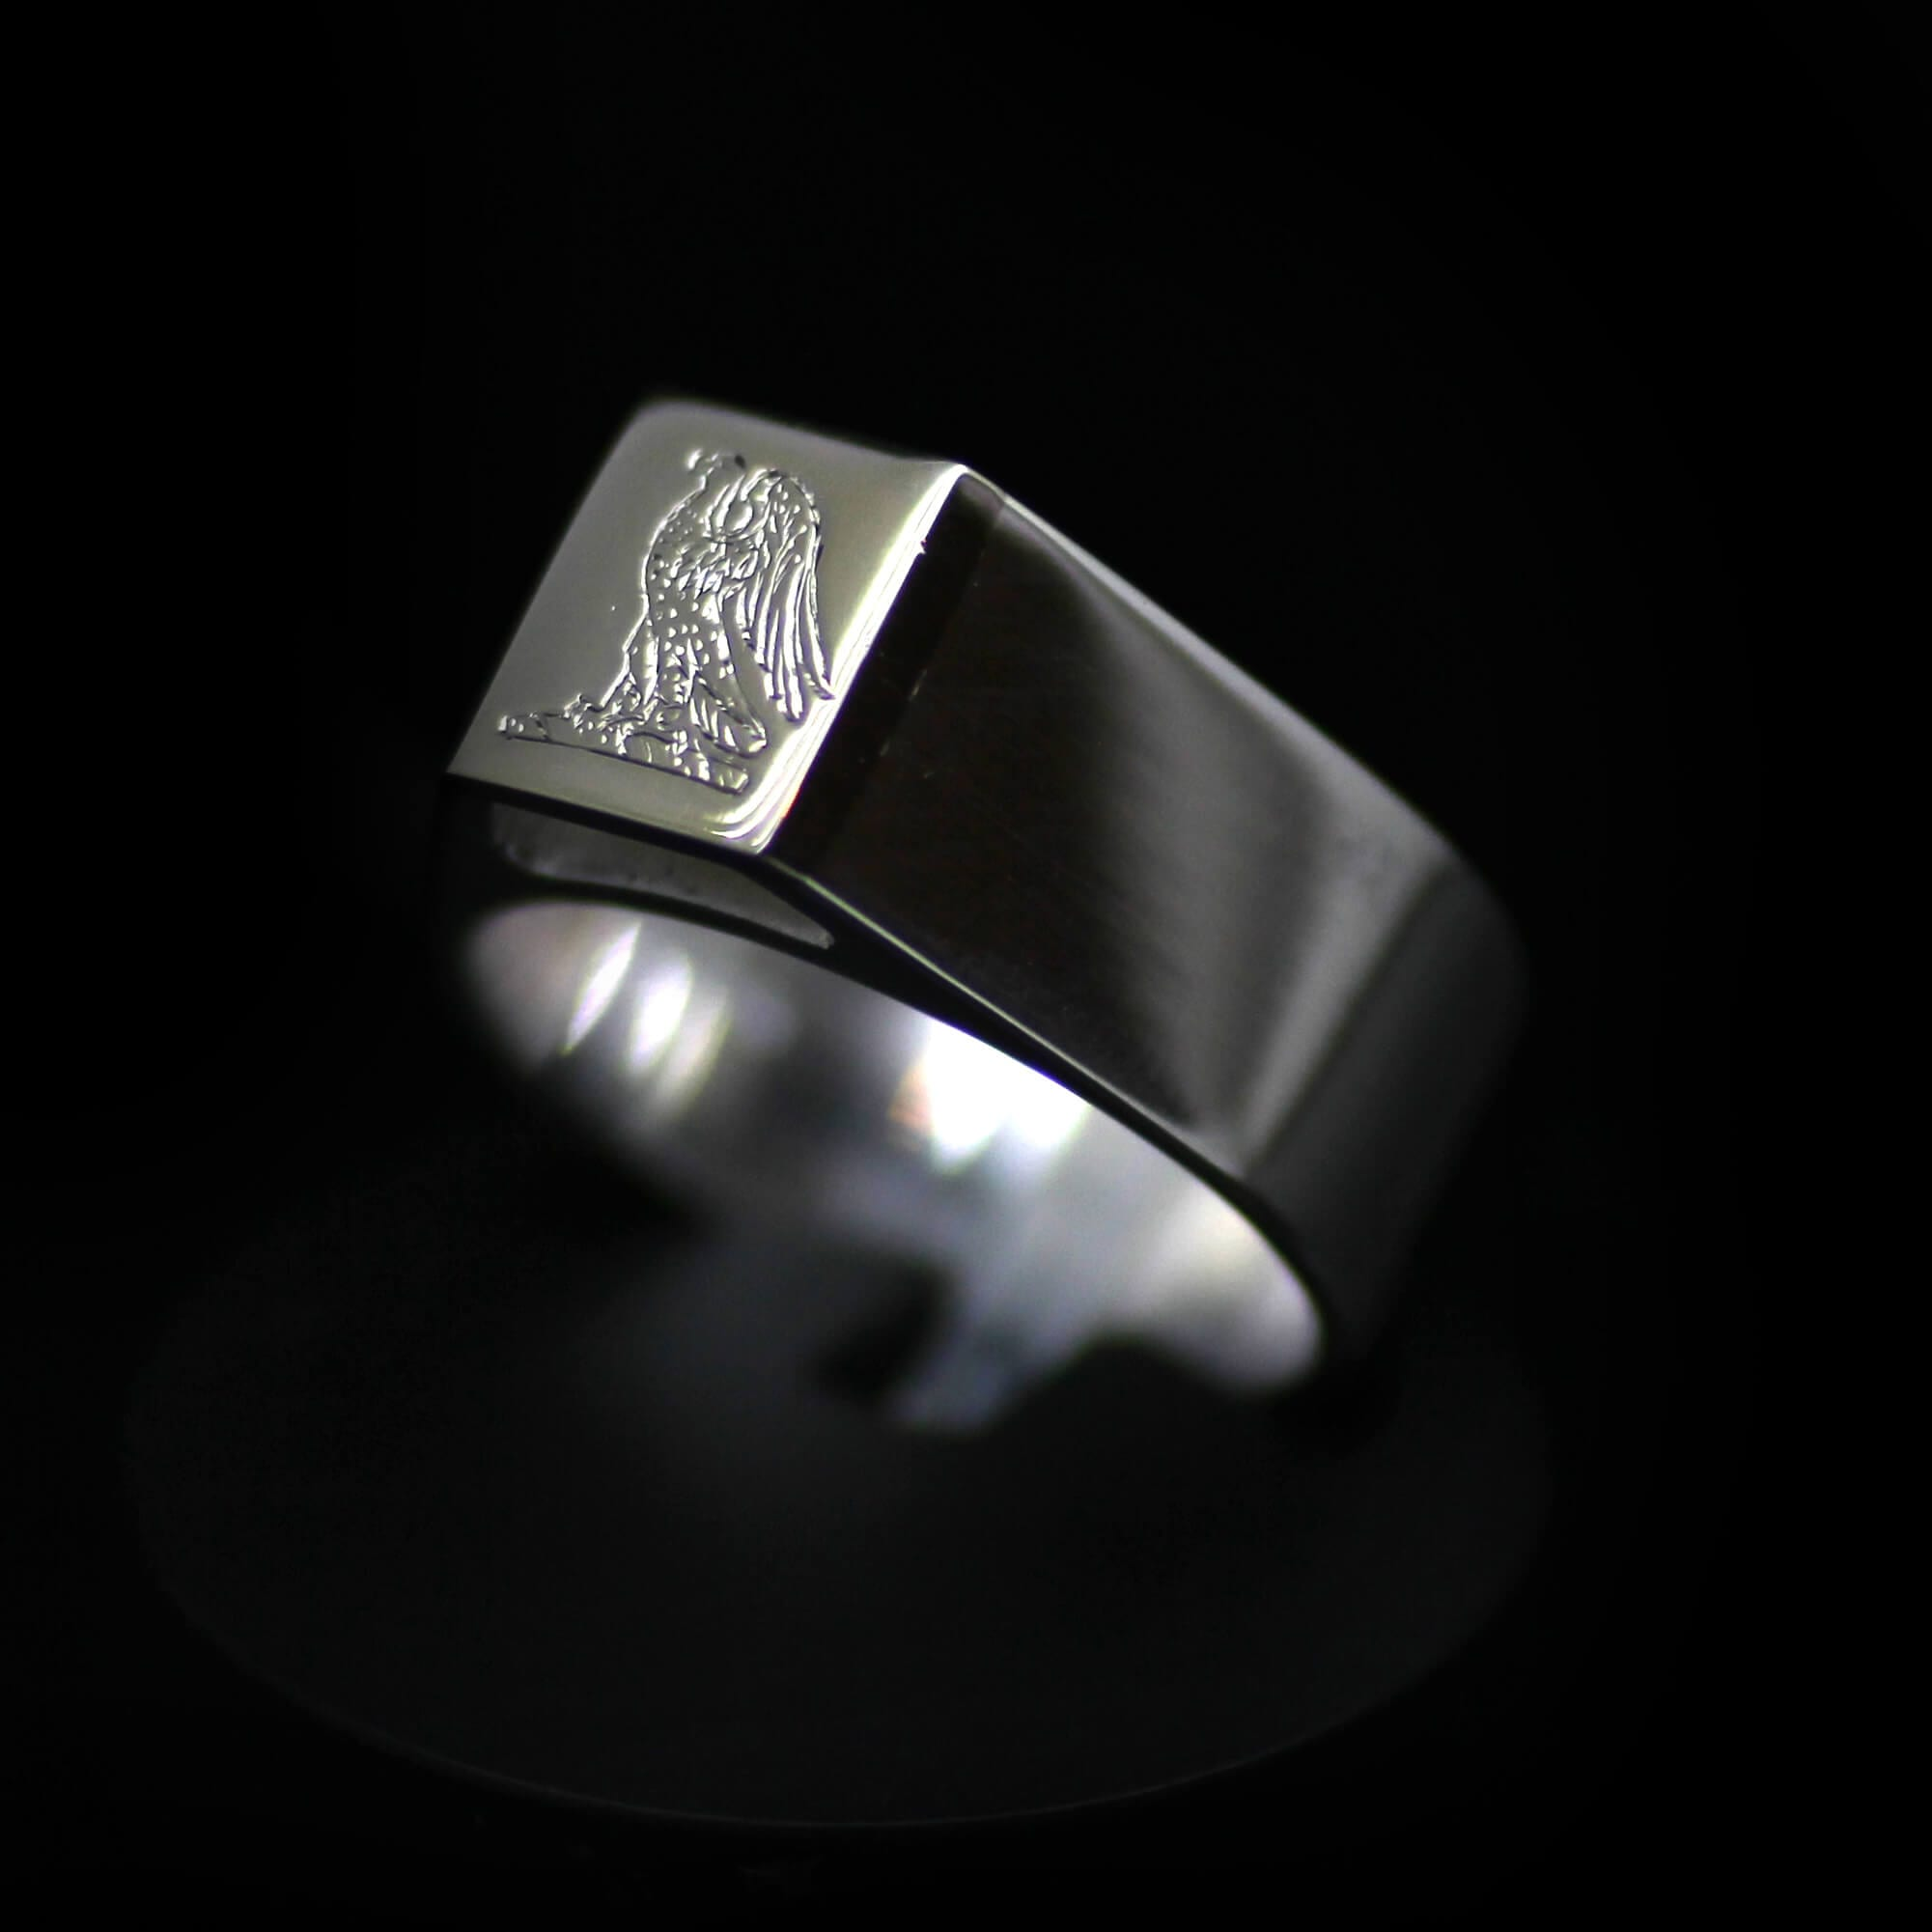 Bespoke handmade 14ct White Gold mens Signet ring